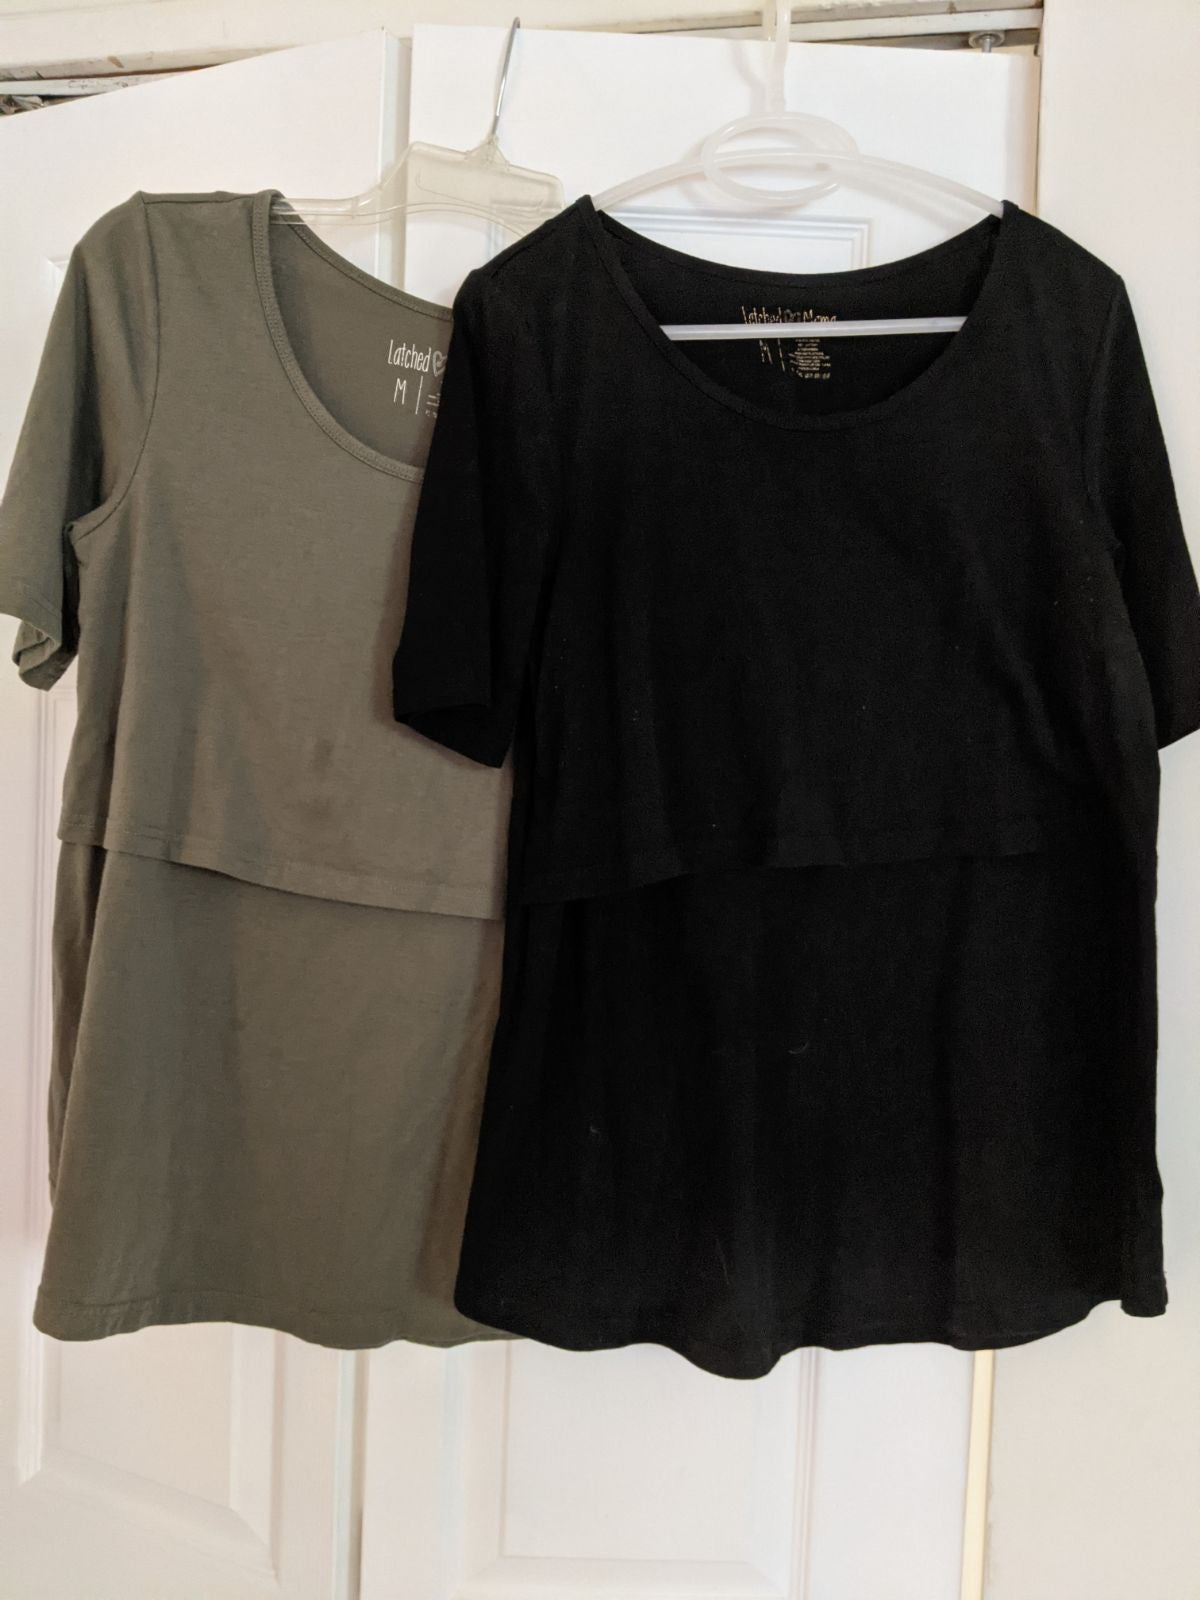 2 Latched Mama Nursing tops